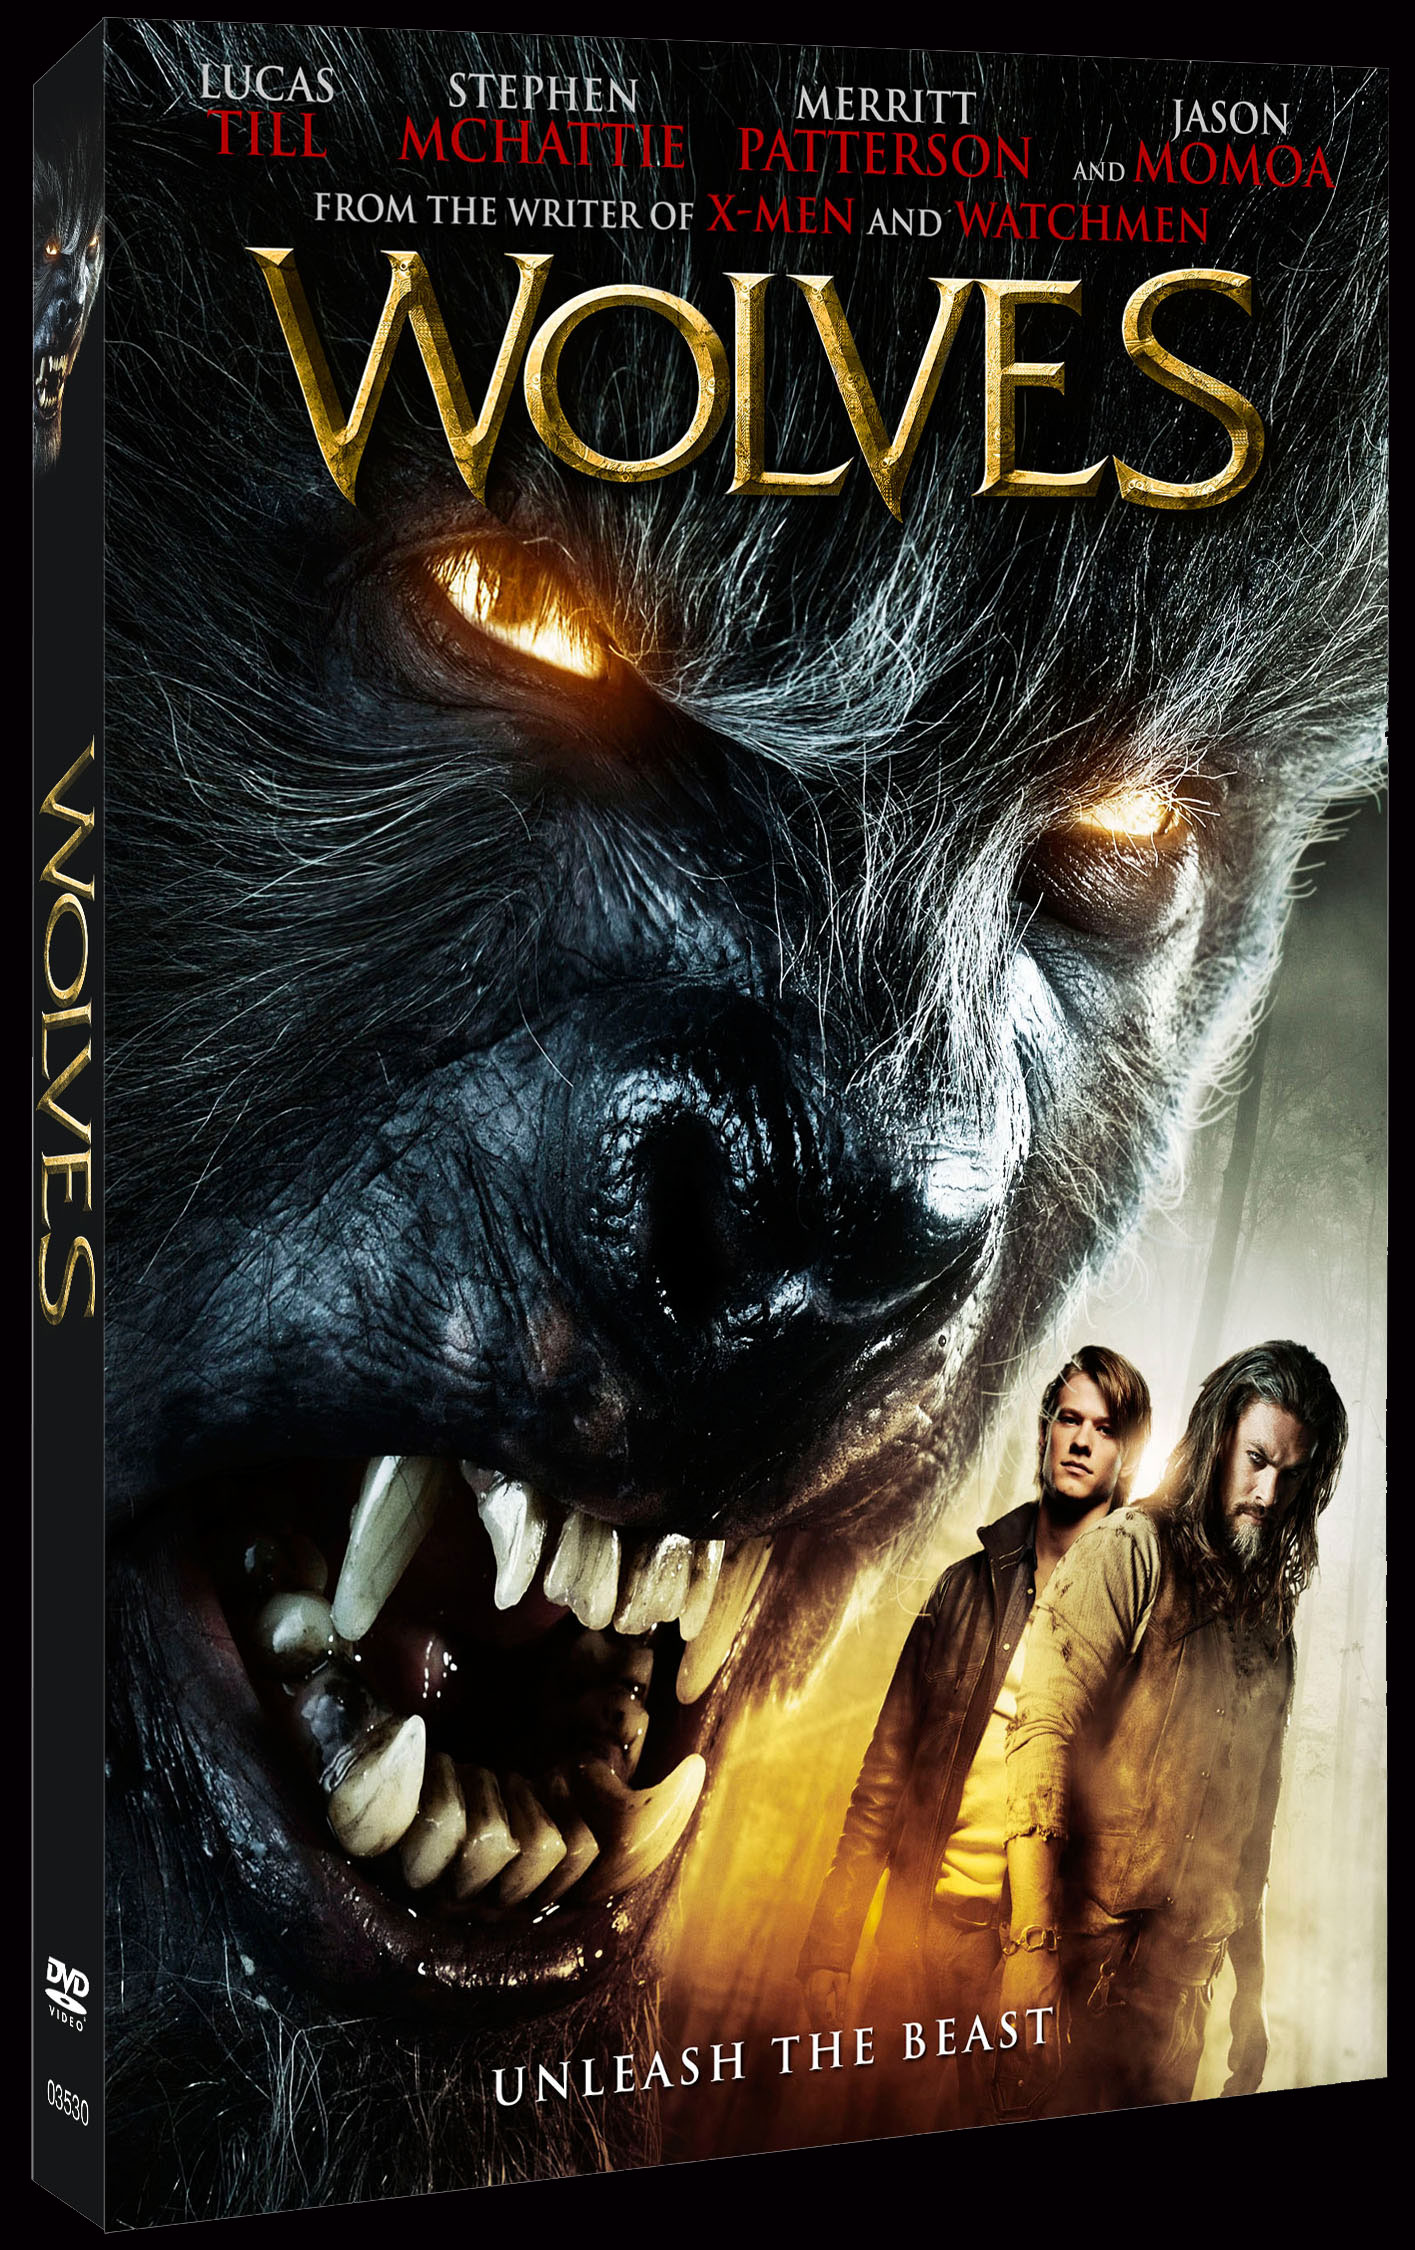 Wolves DVD art - Wolves Howling at Home